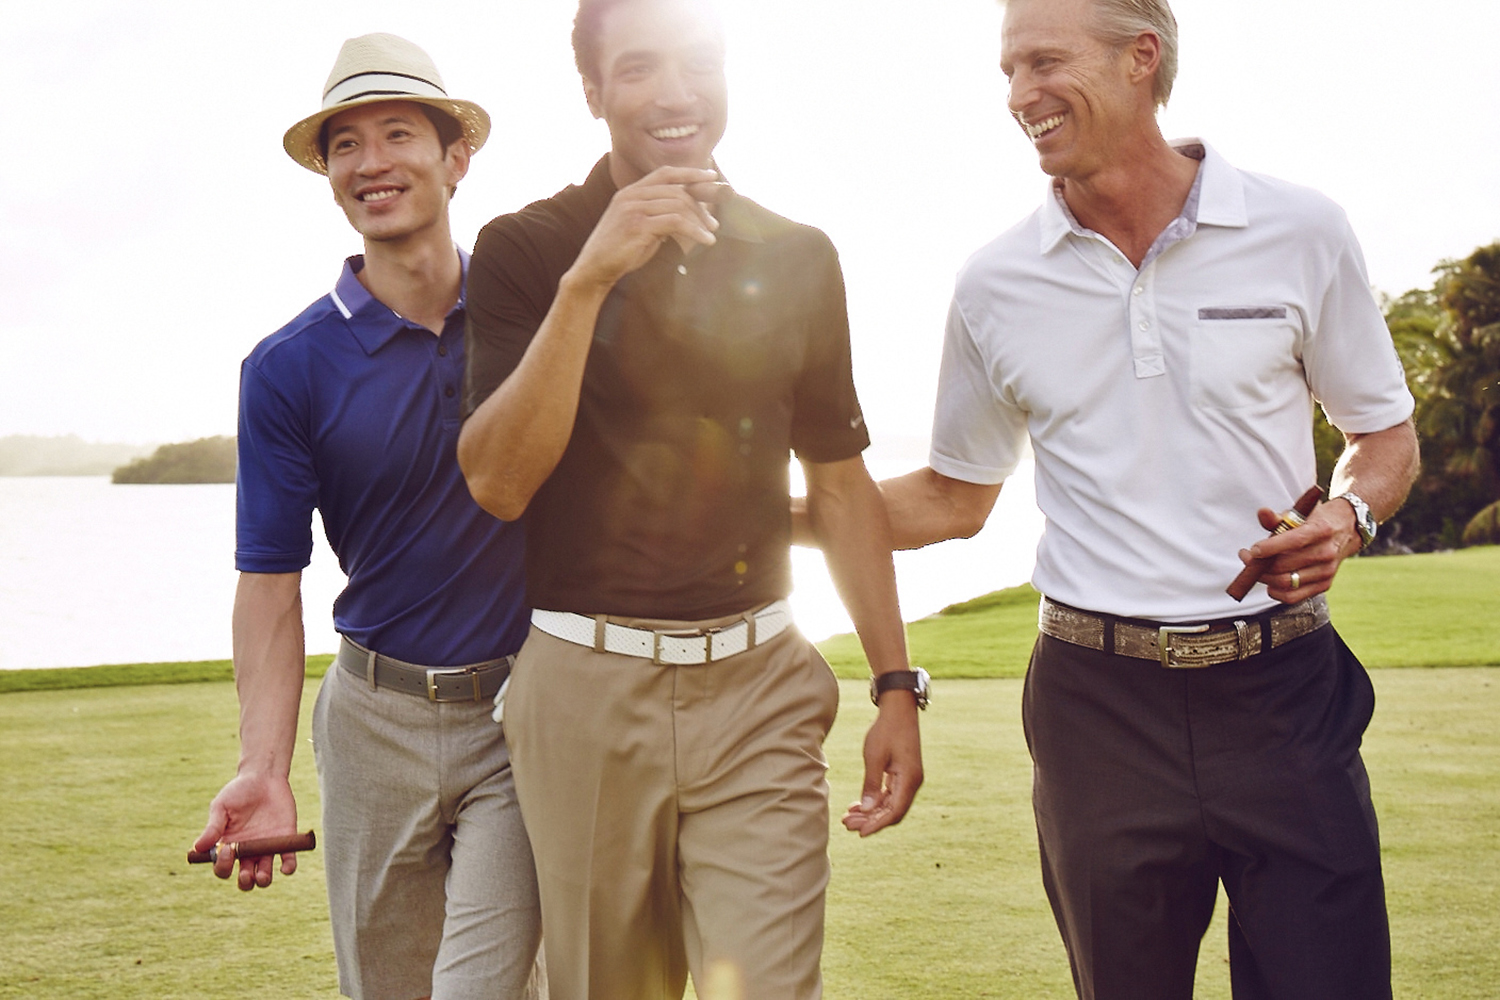 Men smoking cigars on golf course